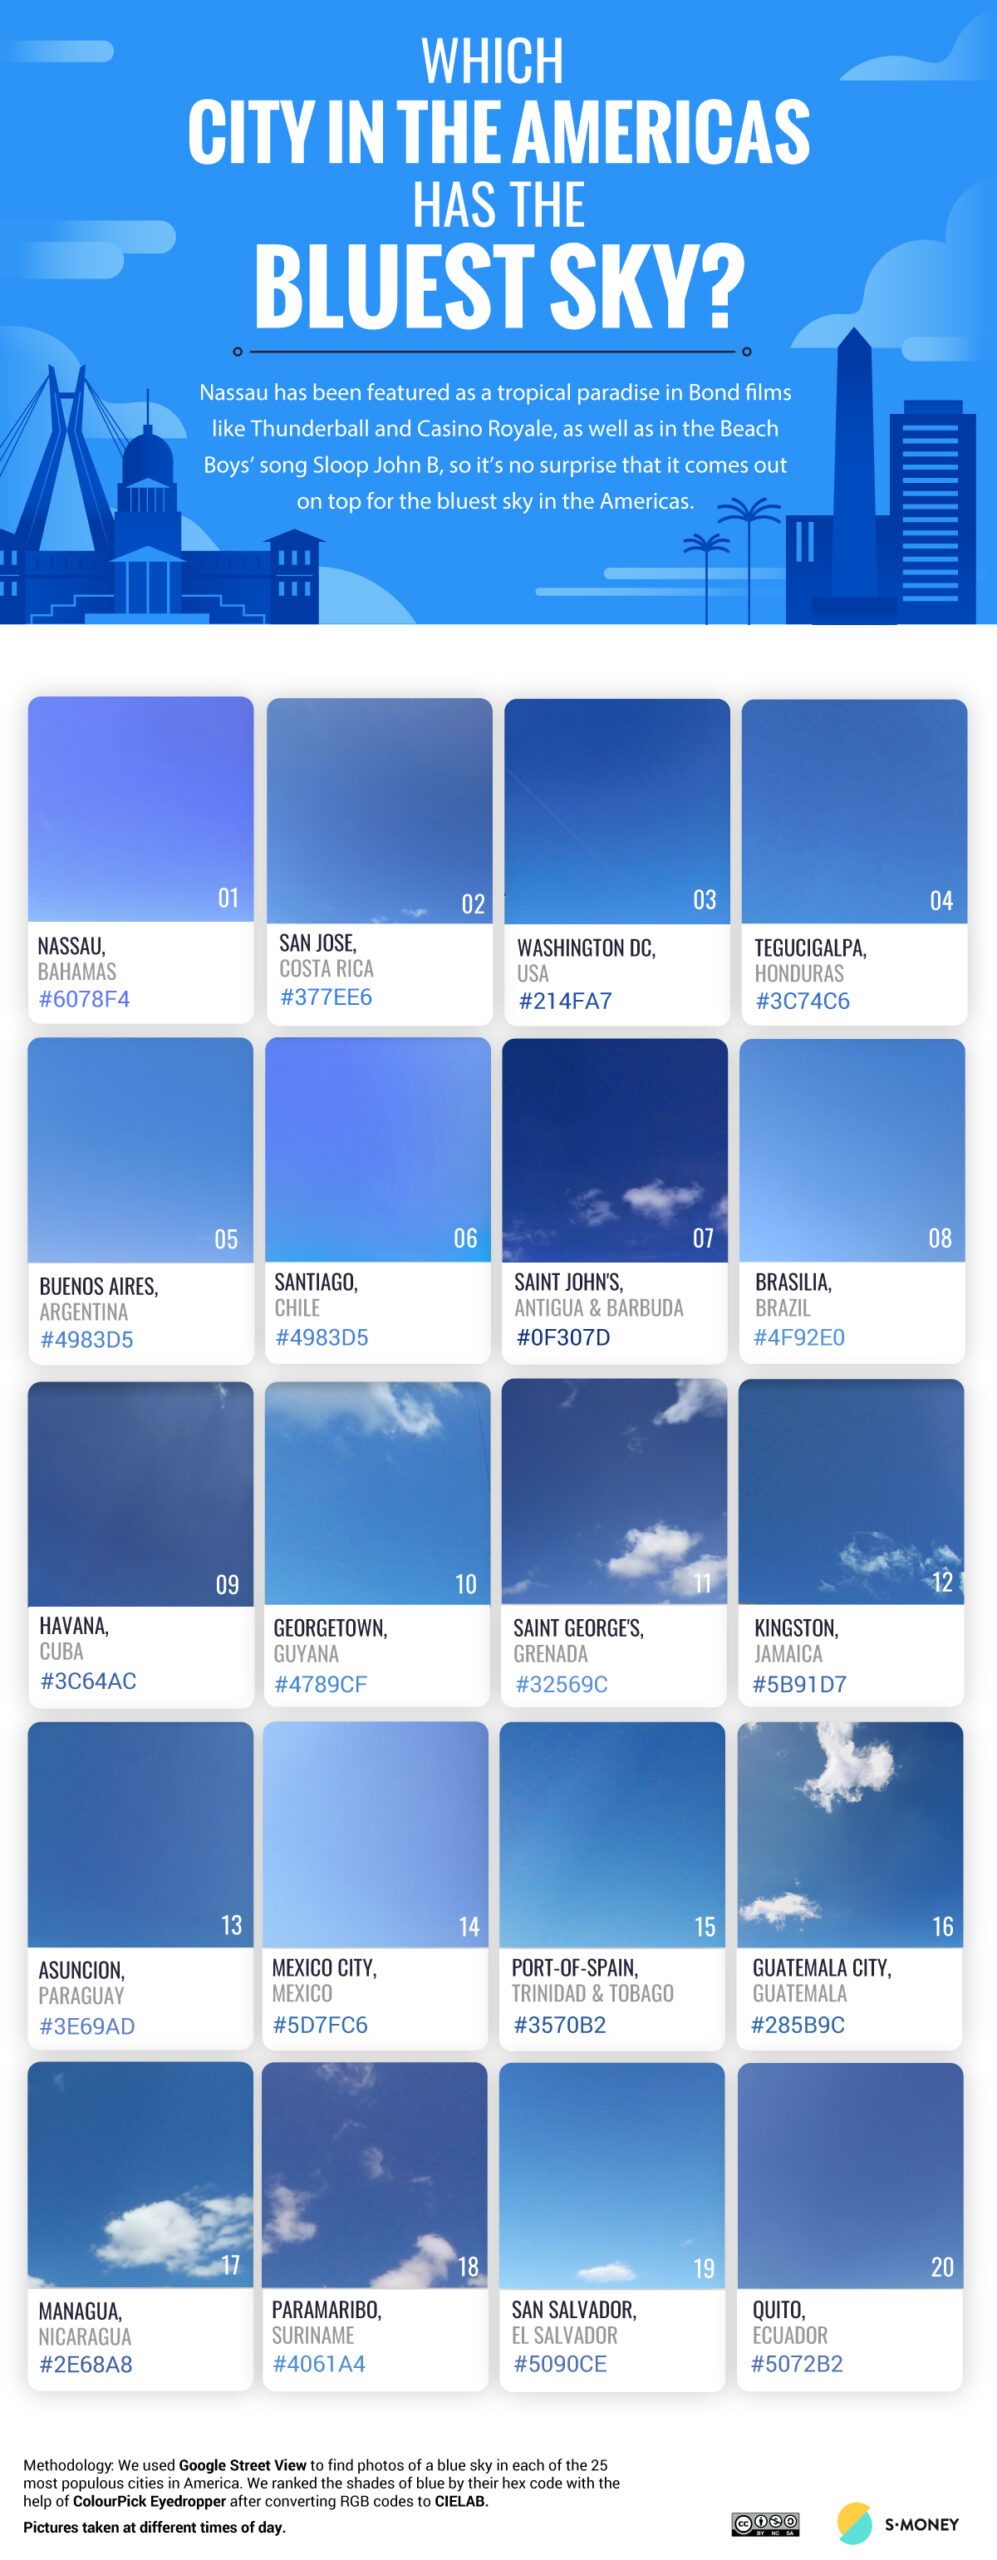 Which city has the bluest sky in the Americas